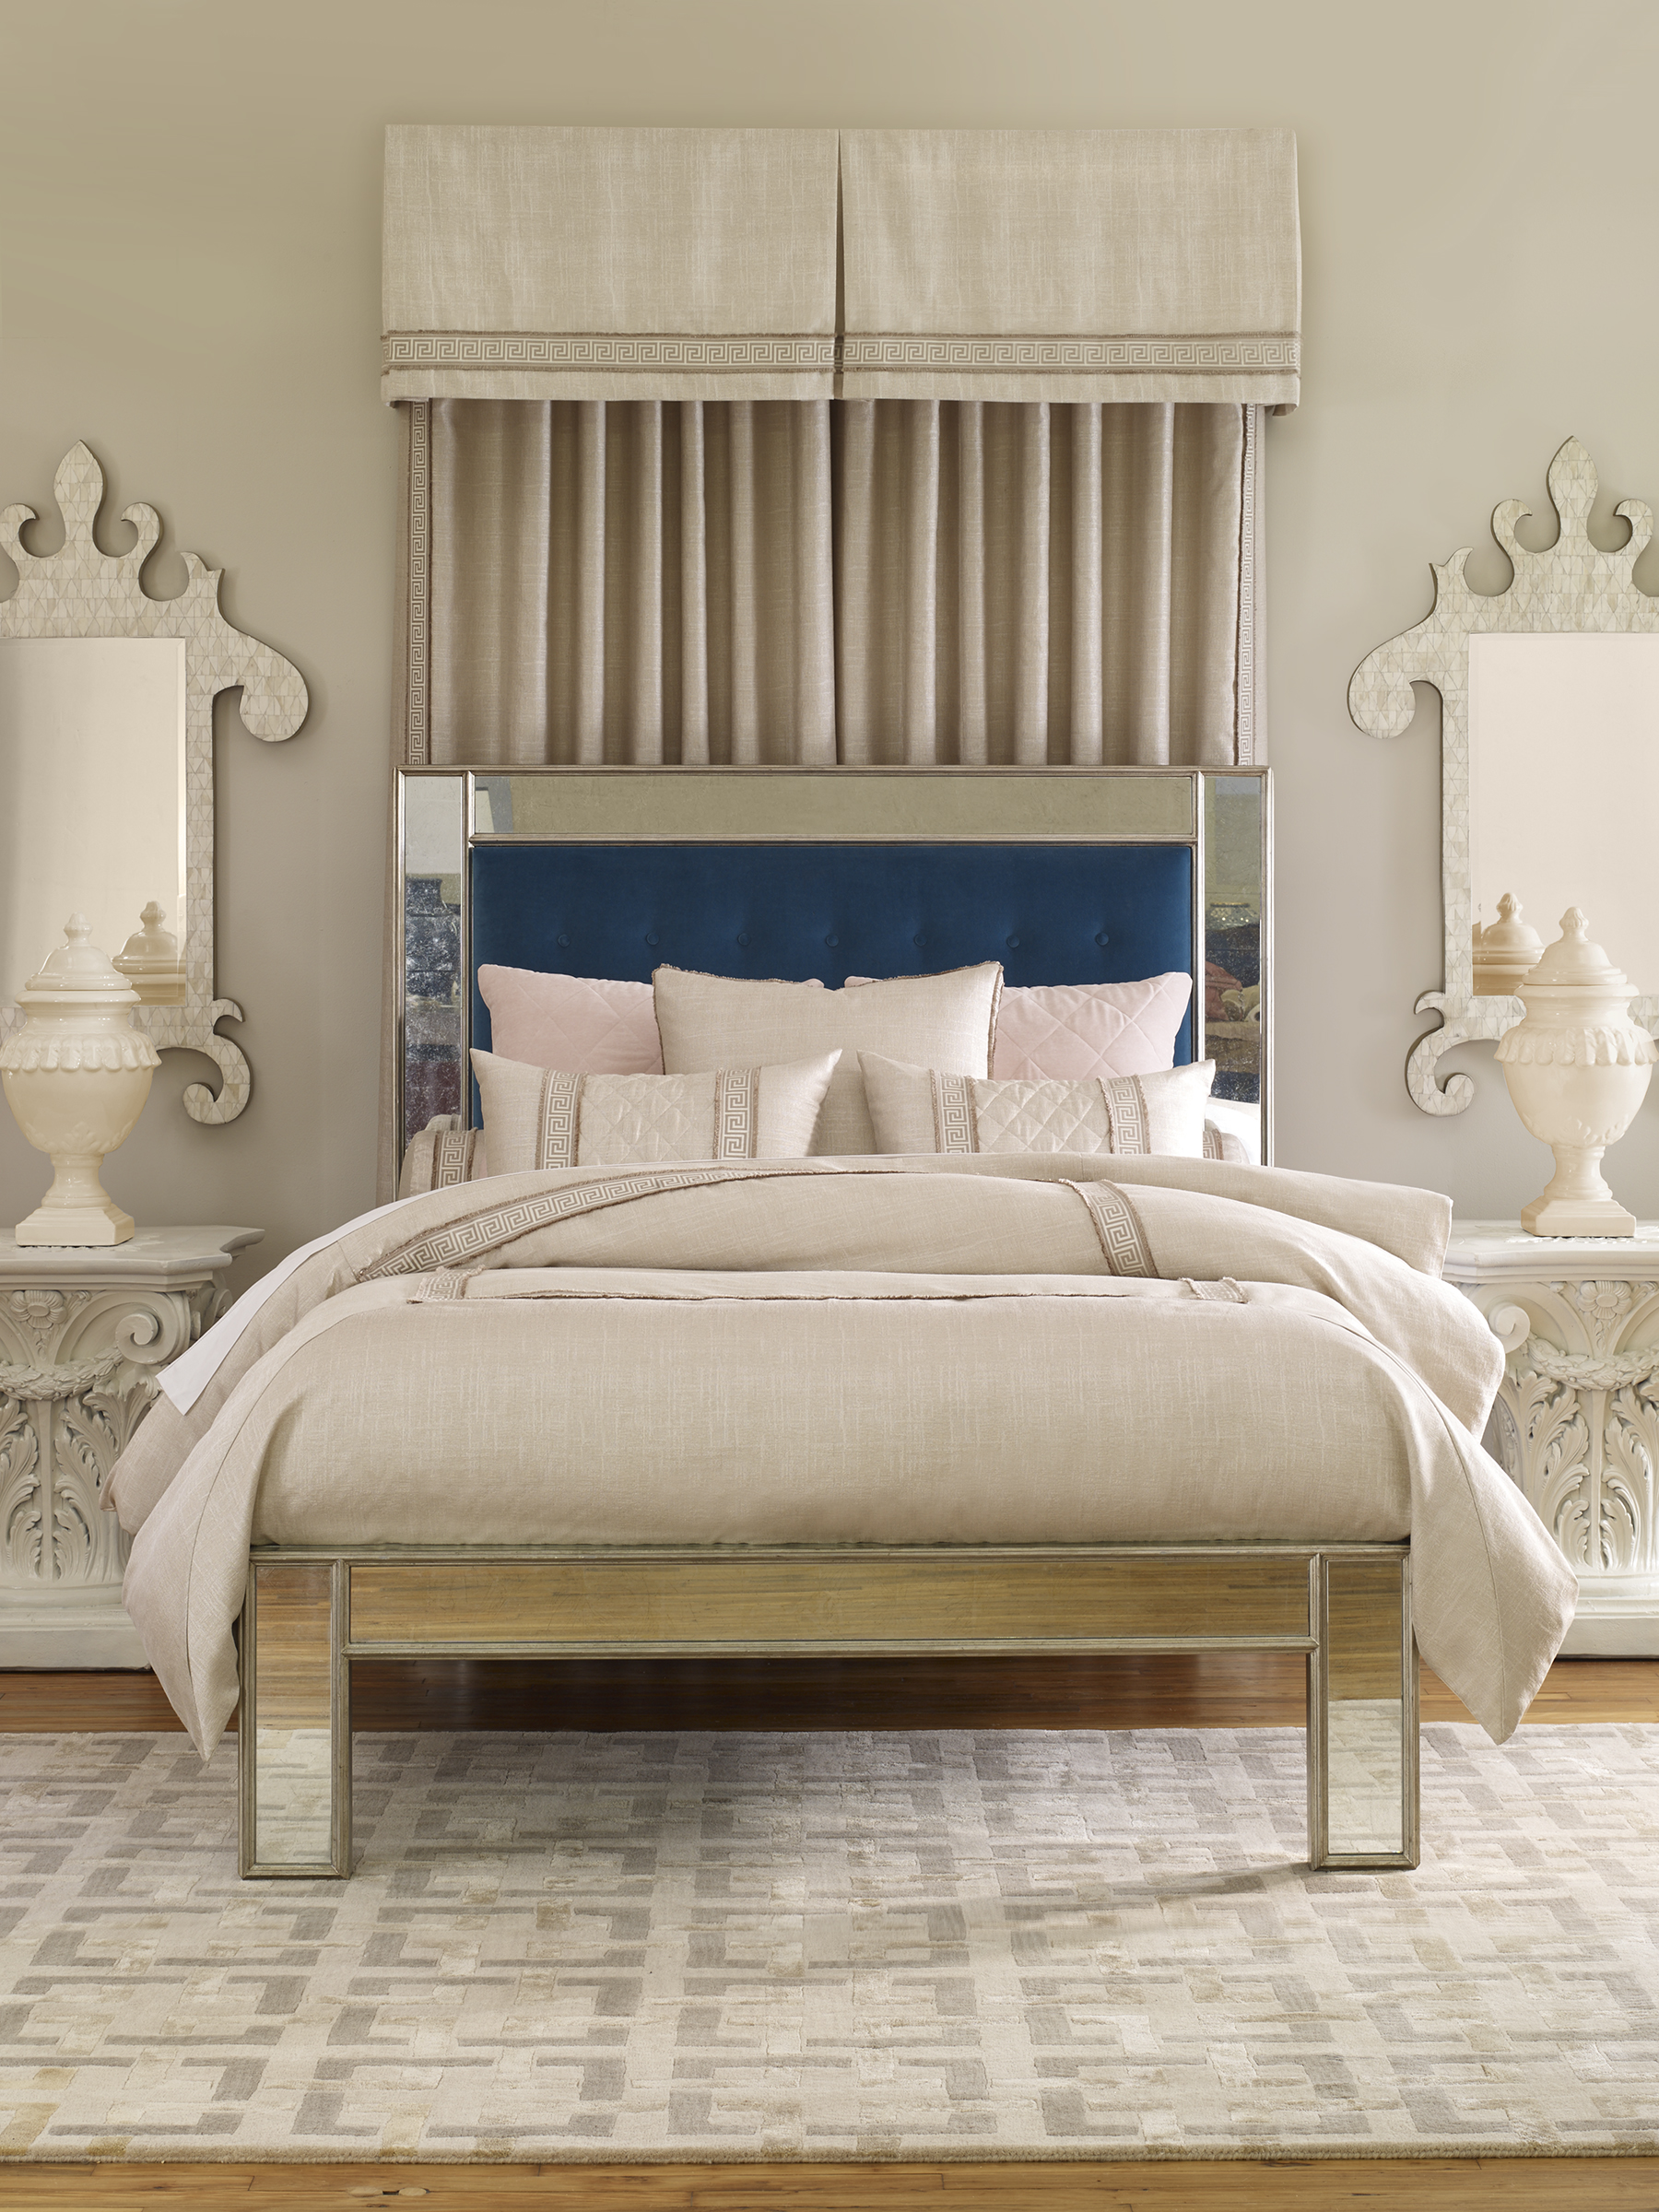 Anthony Baratta Launches New Bedding Collection With